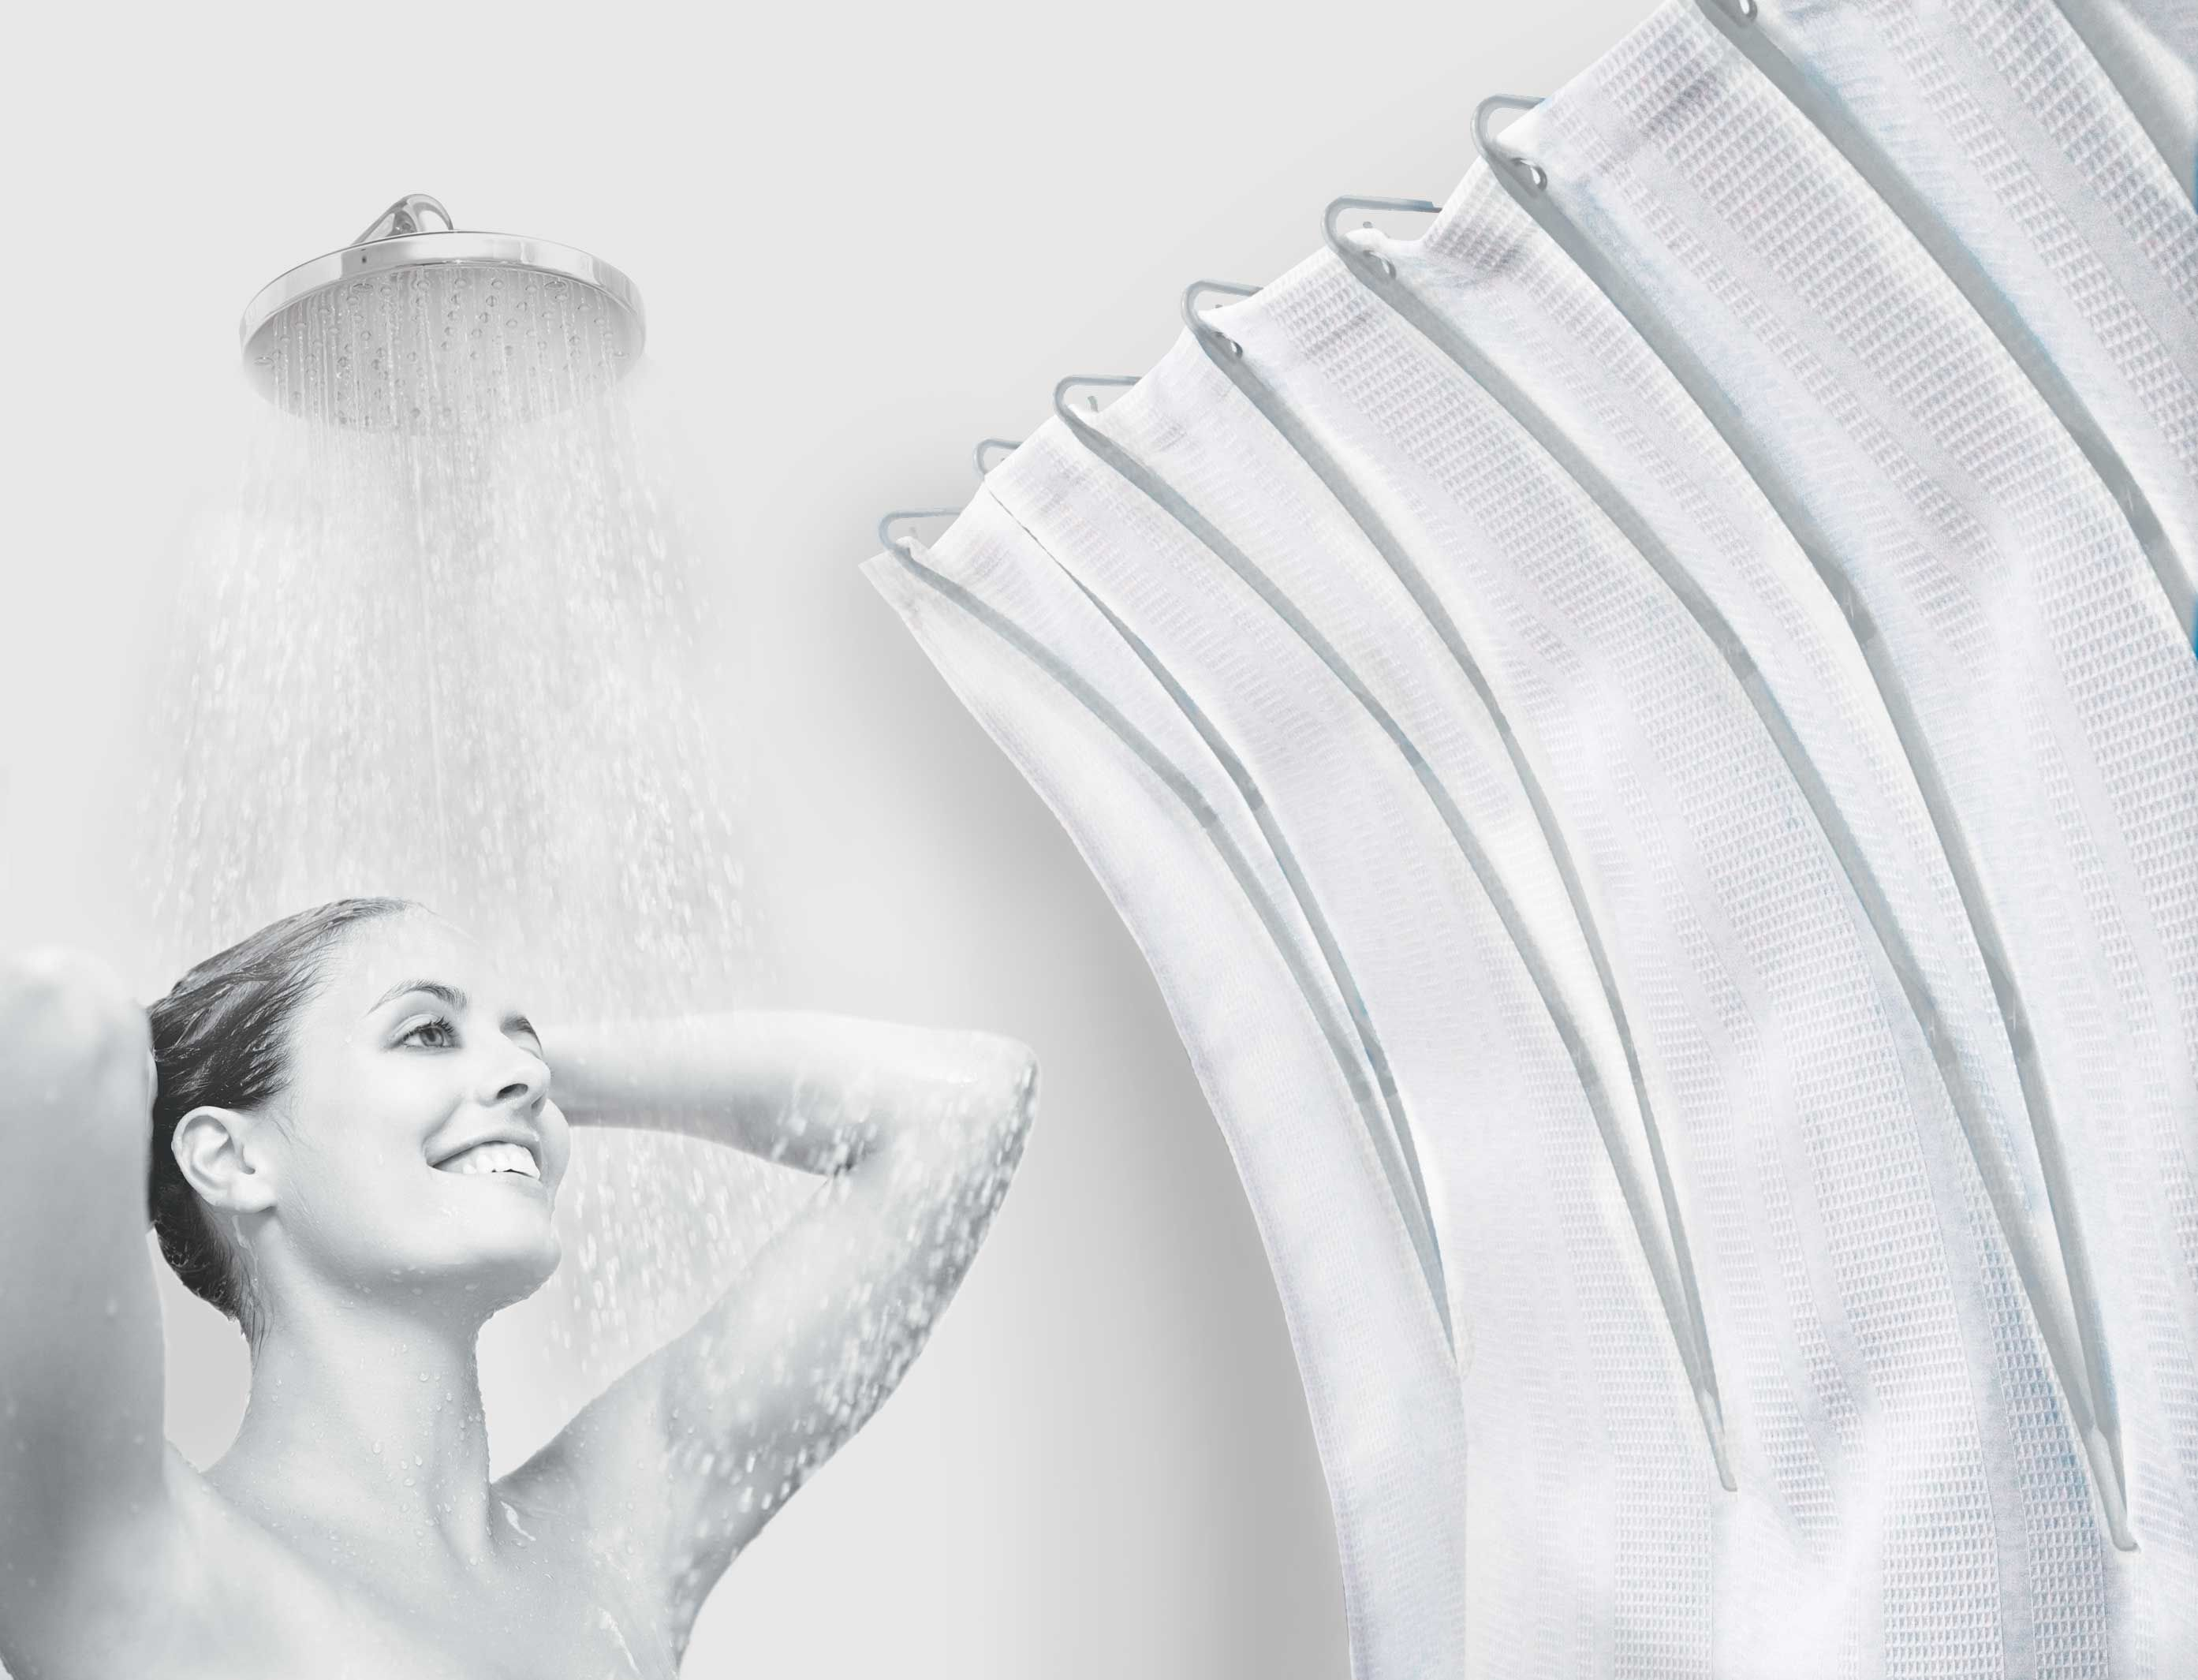 Curvit Invention Creates More Shower Space for Home Bathers by ...